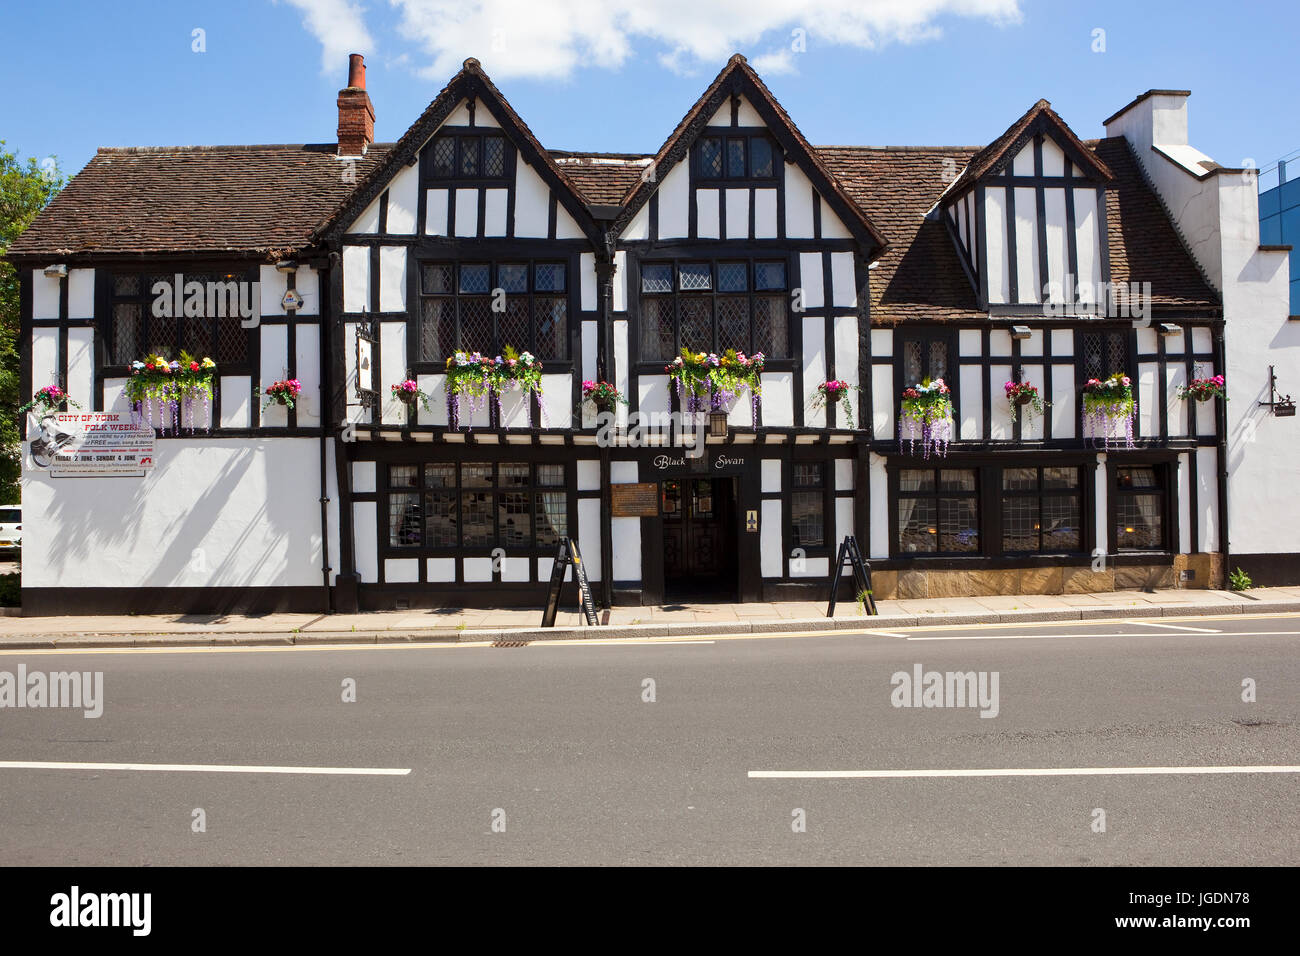 The famous fifteenth century Black Swan Inn at Peasholme green in the historic city of York - Stock Image